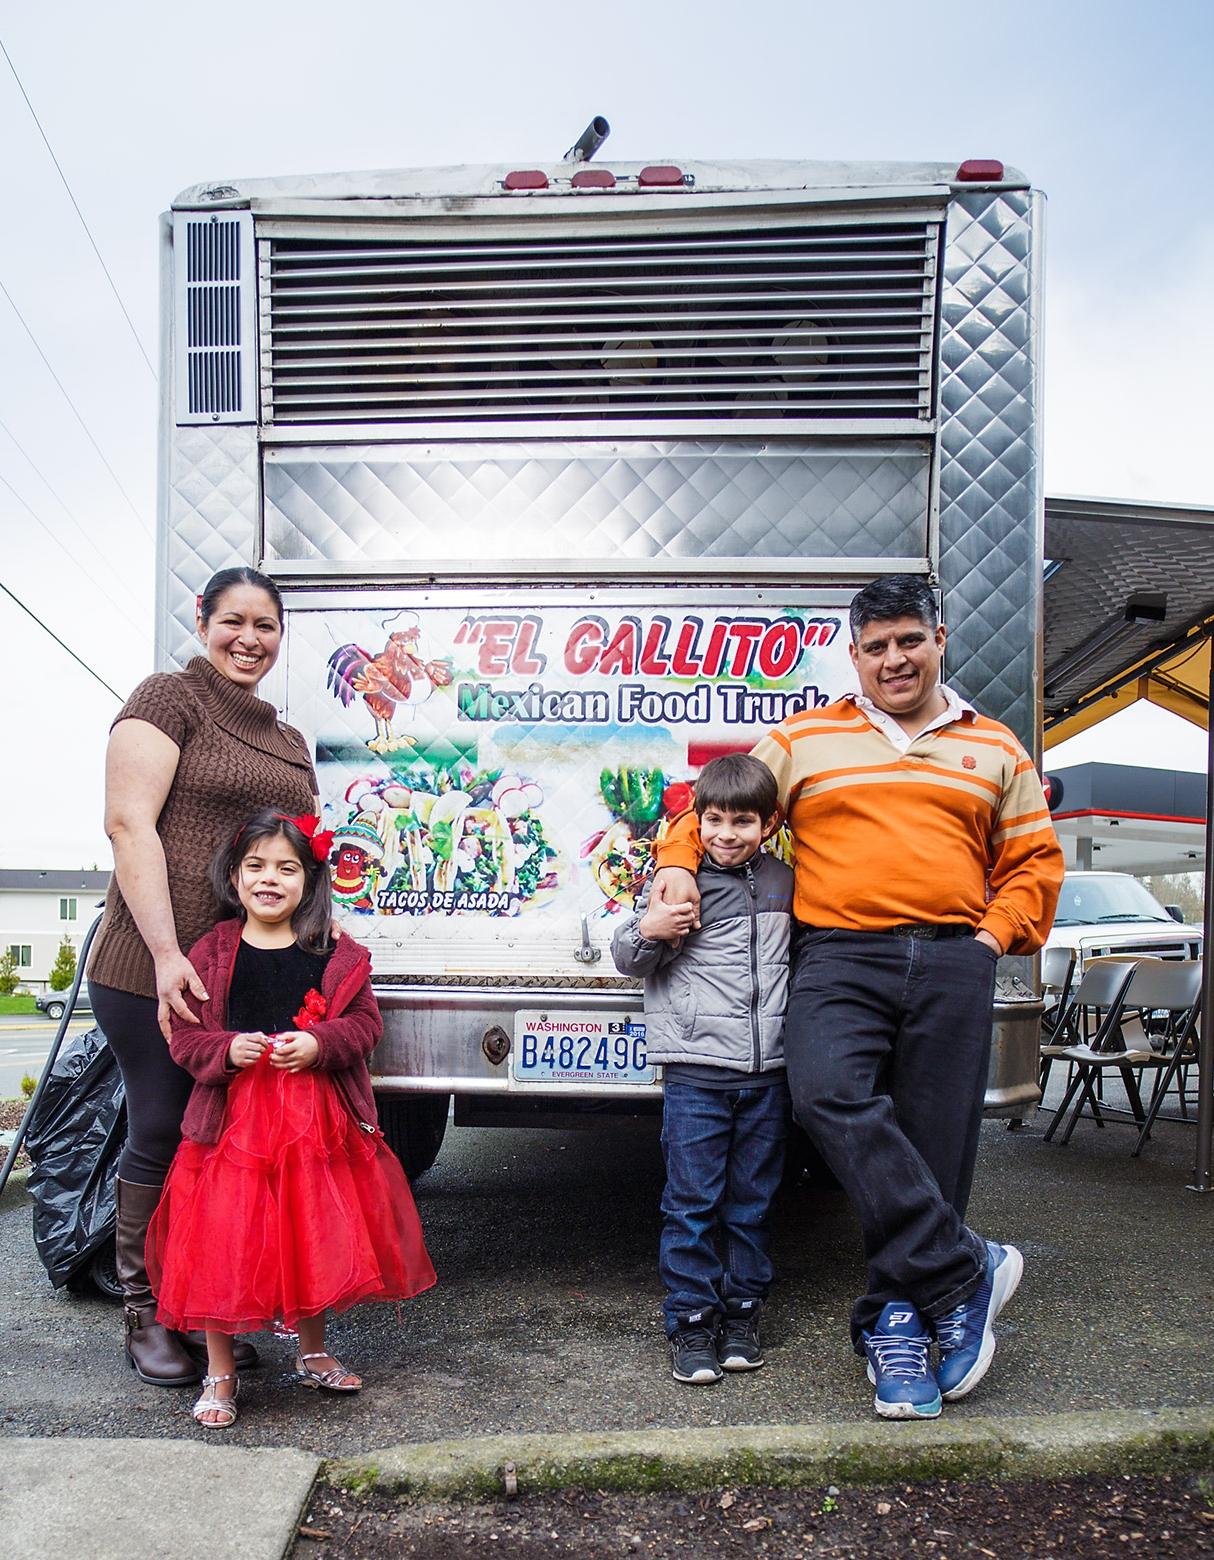 If you haven't visited Elizabeth Romero's food truck yet, you really must. CIE worked with    Mercy Corps Northwest    to support    El Gallito Mexican Food Truck    with her business plan and financial projections, which resulted in a loan to fund her launch.    Elizabeth is a first generation immigrant who has had a dream of owning her own business for years. For the past three years, she has been using her own saved money to slowly accumulate the equipment and supplies she would need to open her own food truck. She came to MercyCorps Northwest to borrow the last bit of capital necessary to pay for permits, licenses and starting inventory. The business is doing well and is busy! If you're in a rush, be sure to call or text your order ahead.    Elizabeth hopes to be able to hire additional employees soon, and has plans to add new products. Eventually, the family plans to pass the business along to their two (currently school-aged) children, and then open an additional food truck—or even a restaurant!     Check it out on Facebook    Or in person at:    10545 SE Carr Rd       Renton, Washington    (425) 647-0660 • Open Monday – Saturday